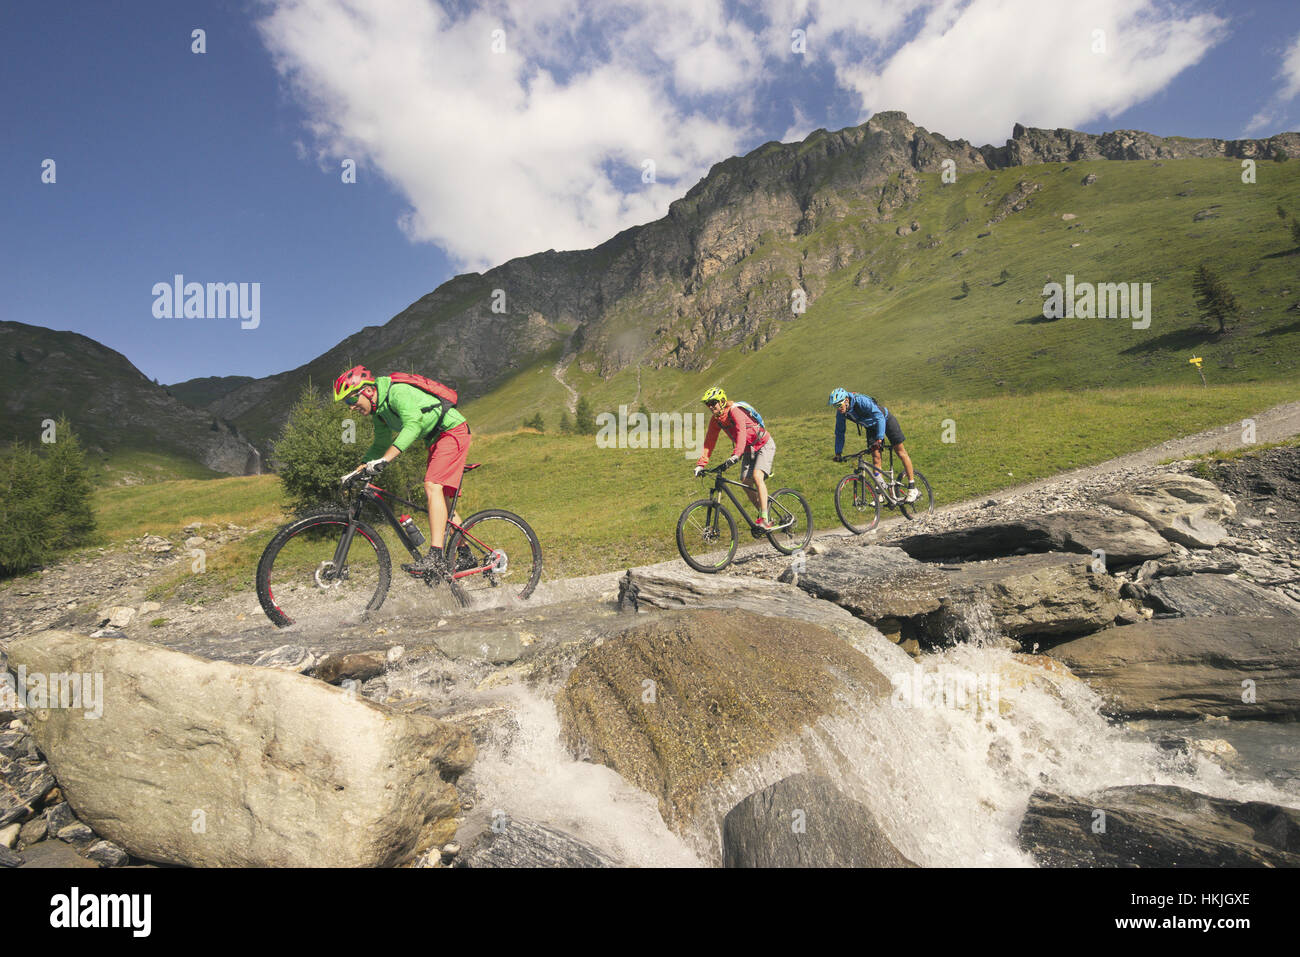 Three mountain bikers crossing stream on mountain, Zillertal, Tyrol, Austria - Stock Image